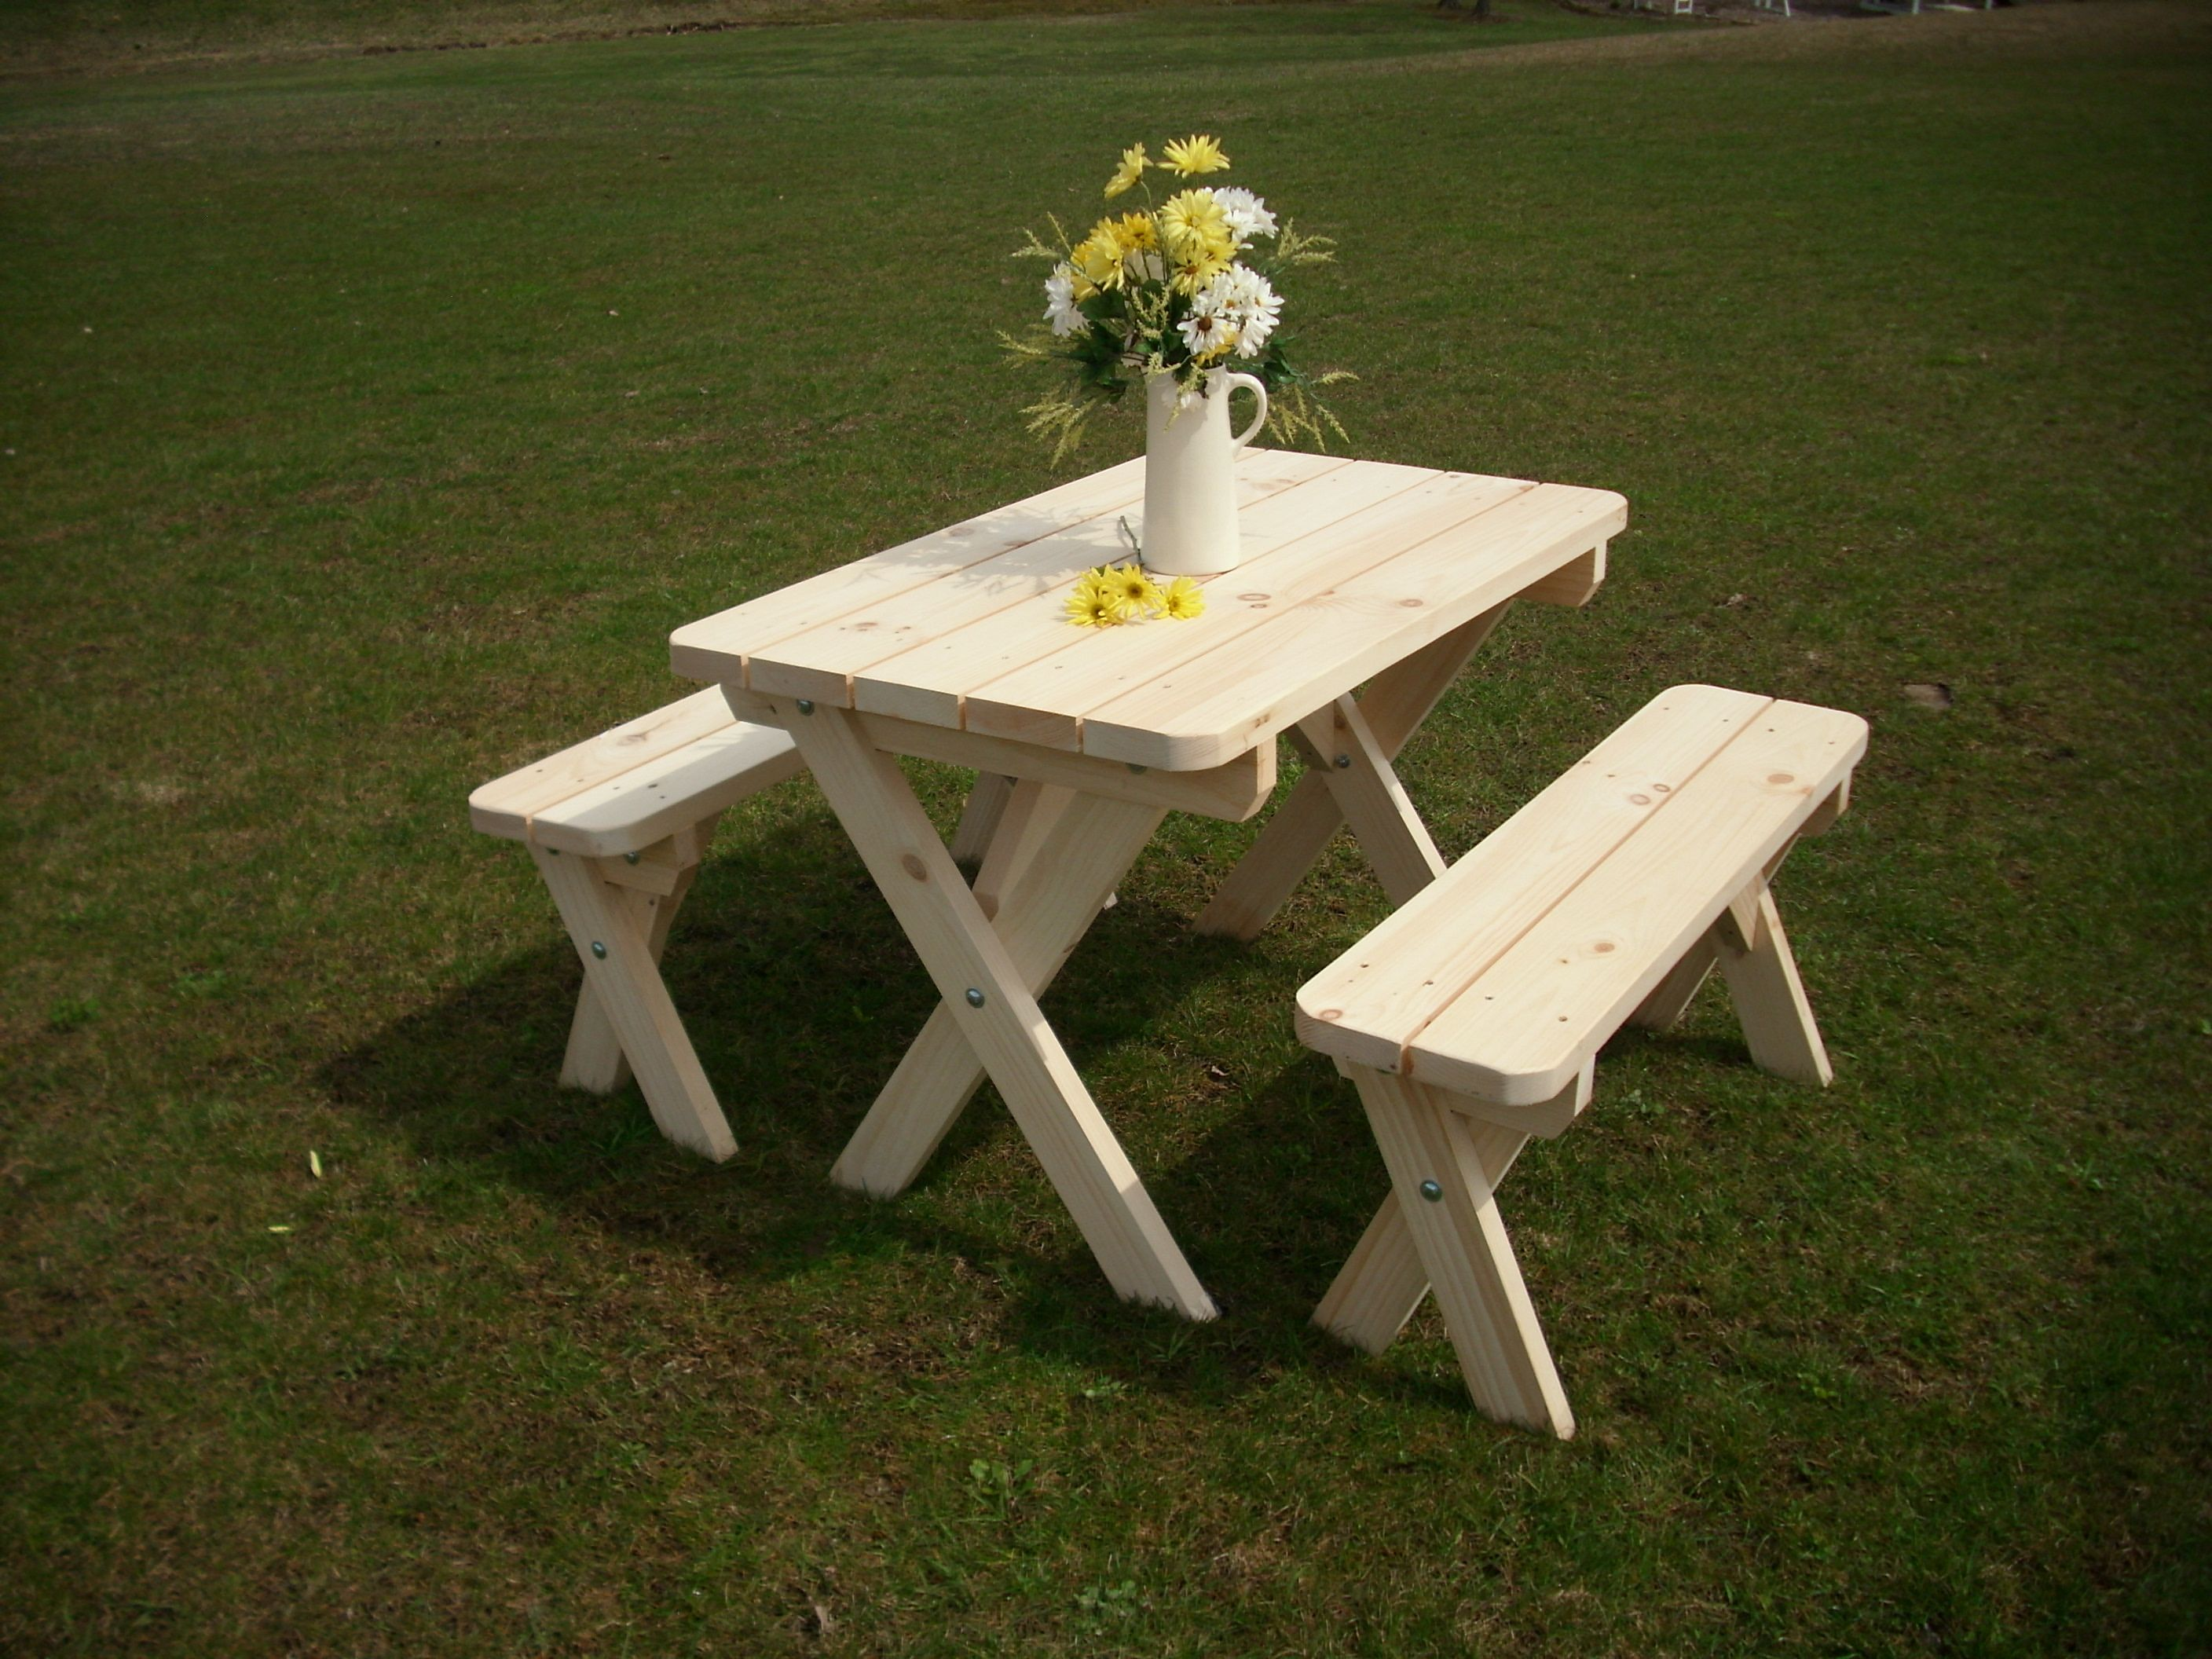 Classic Cross Leg Style Cedar Picnic Table With Detached Benches Country Living At Its Best Picnic Table Red Cedar Wood Barn Furniture